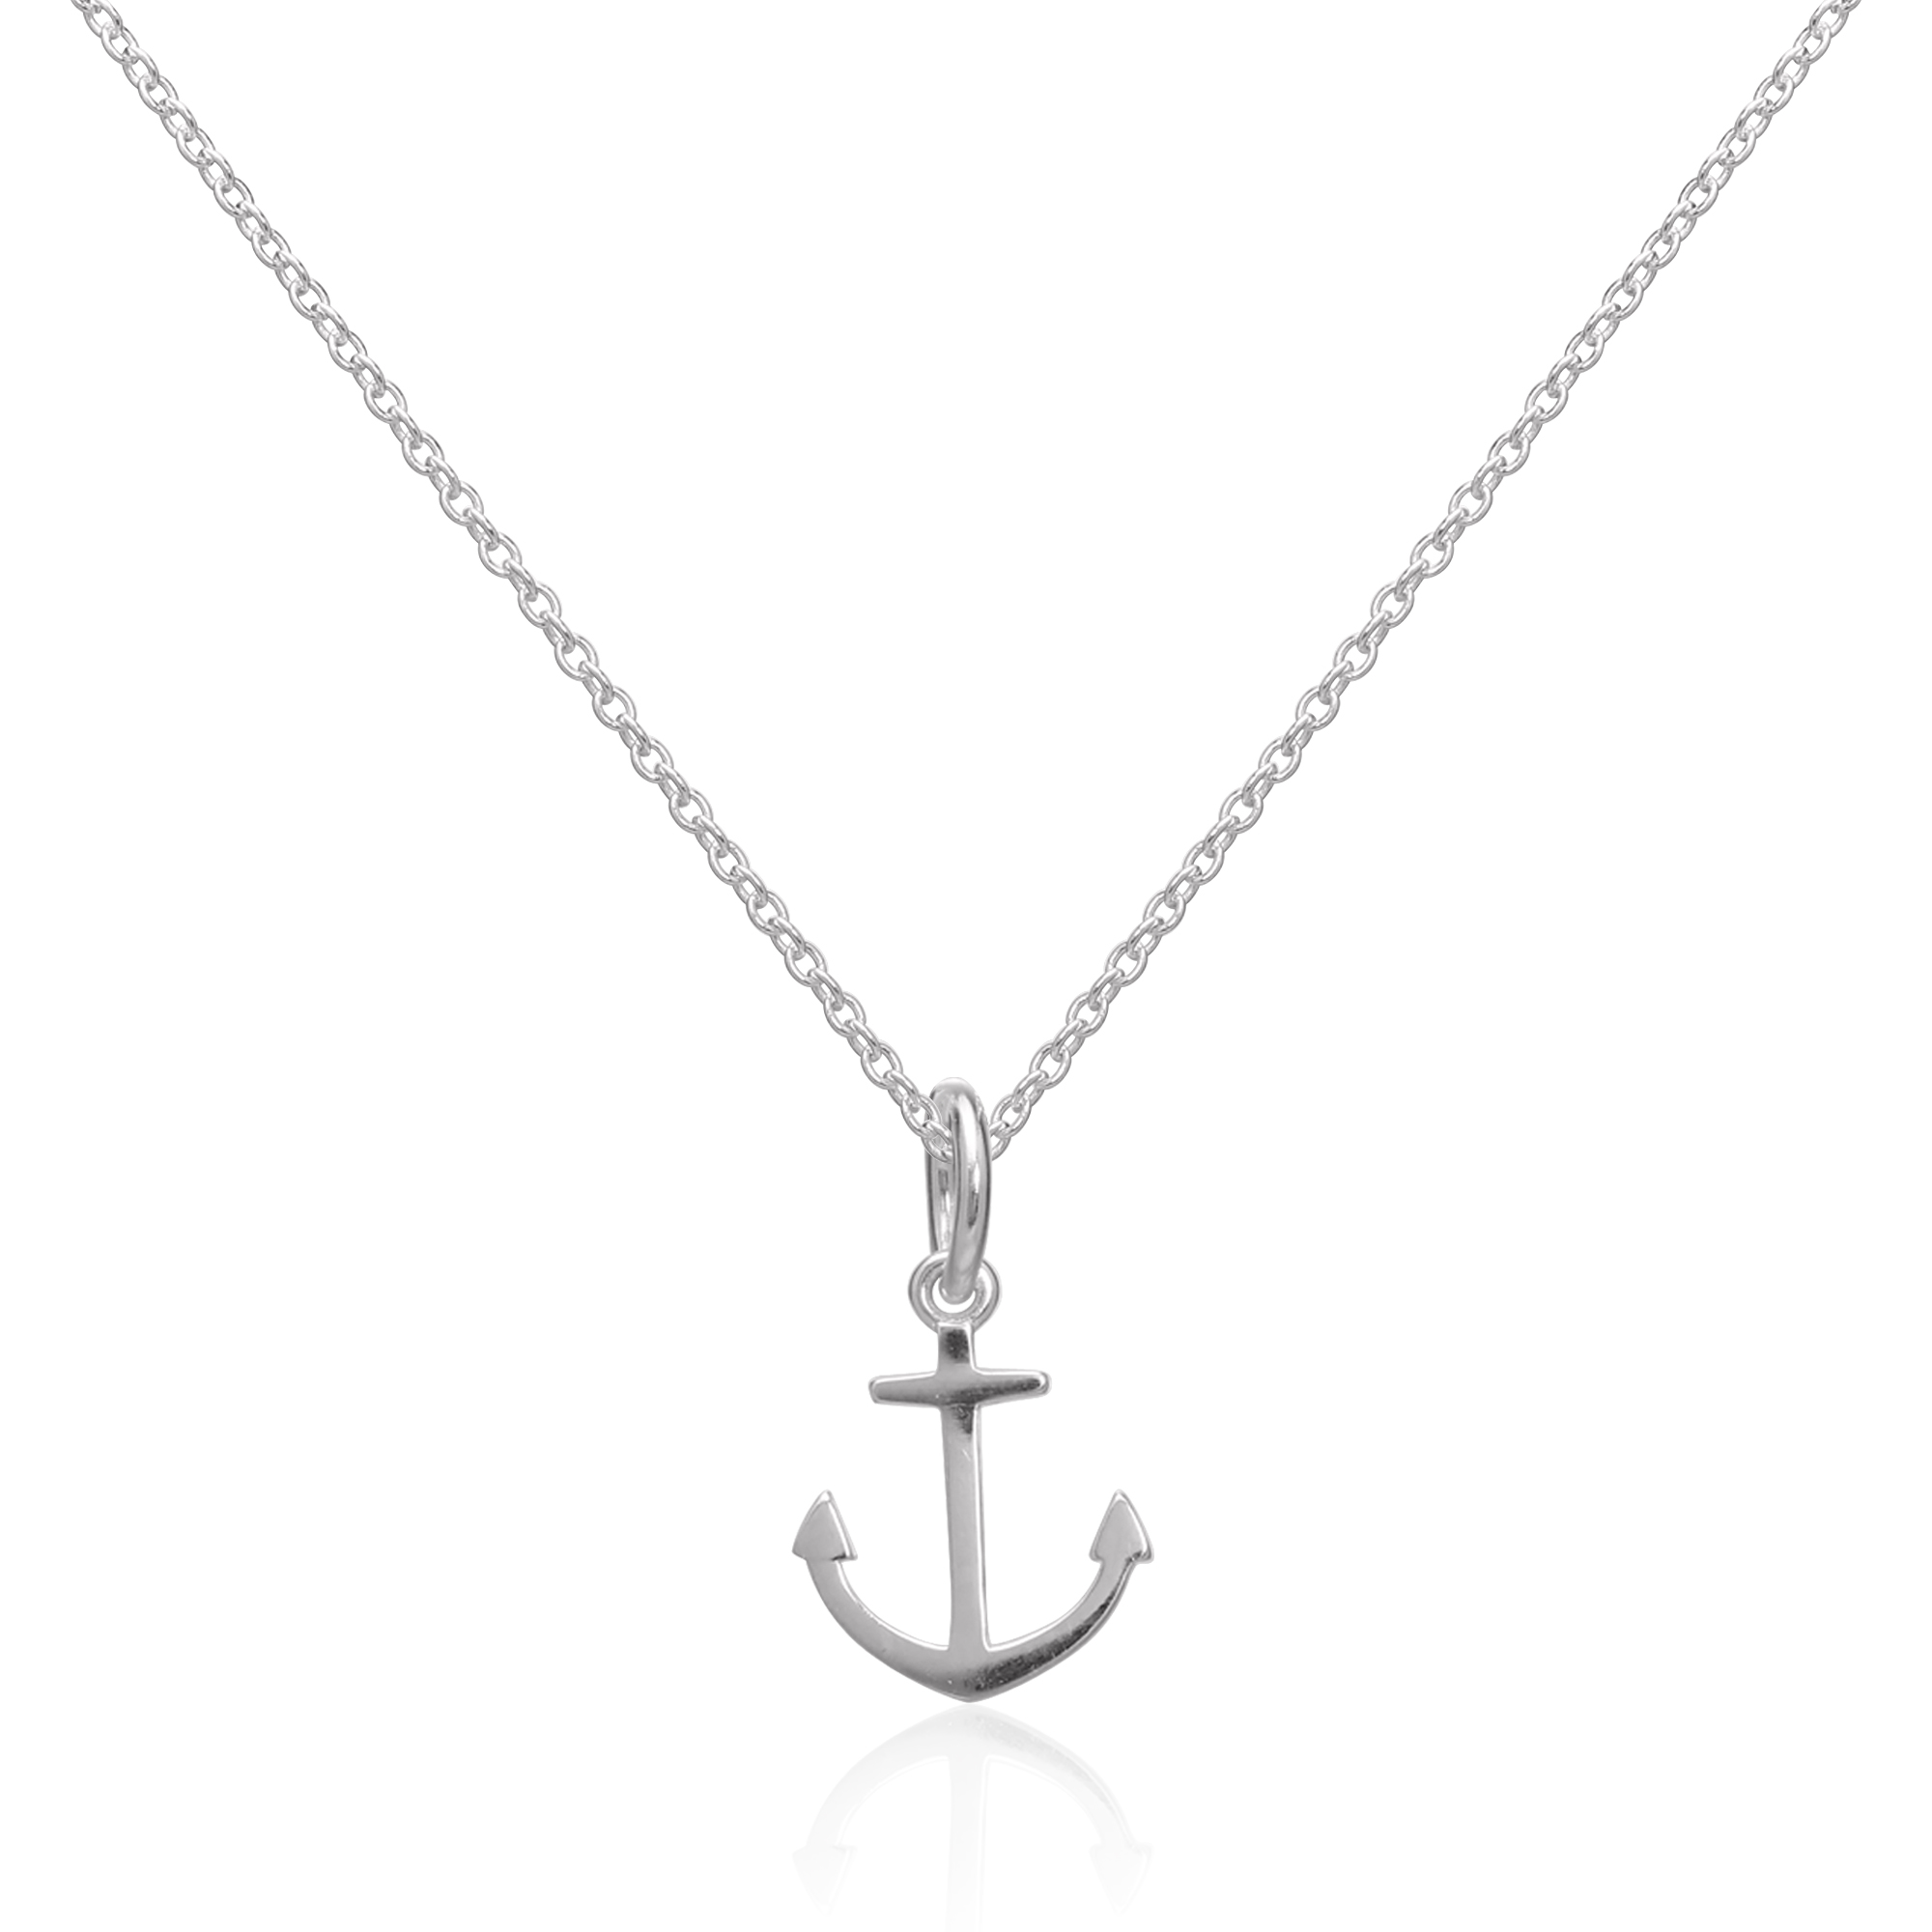 Real 925 Sterling Silver Anchor Necklace 16-22 Inches